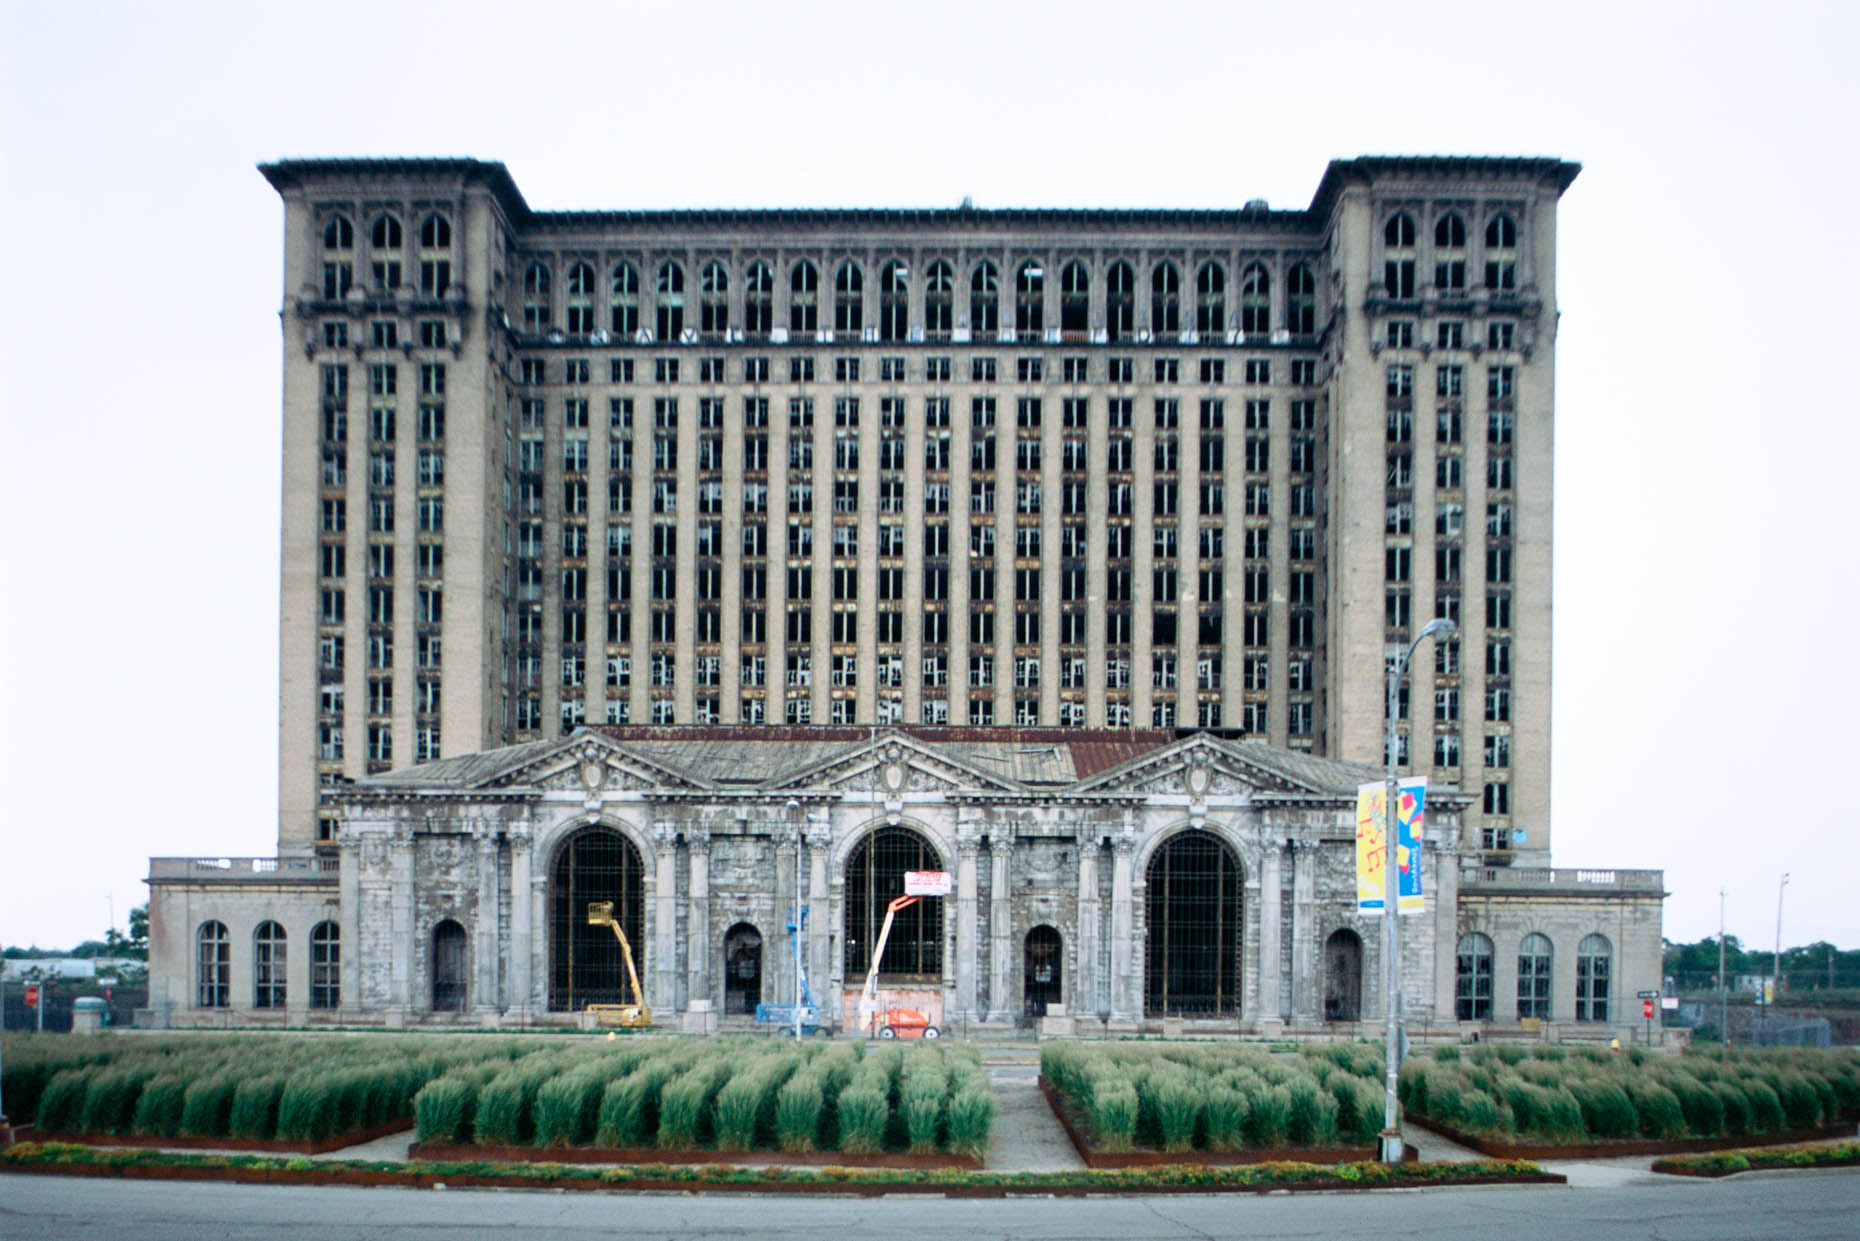 06_Former Michigan Central Railroad Station, Detroit, June 2011_-DUP.jpg